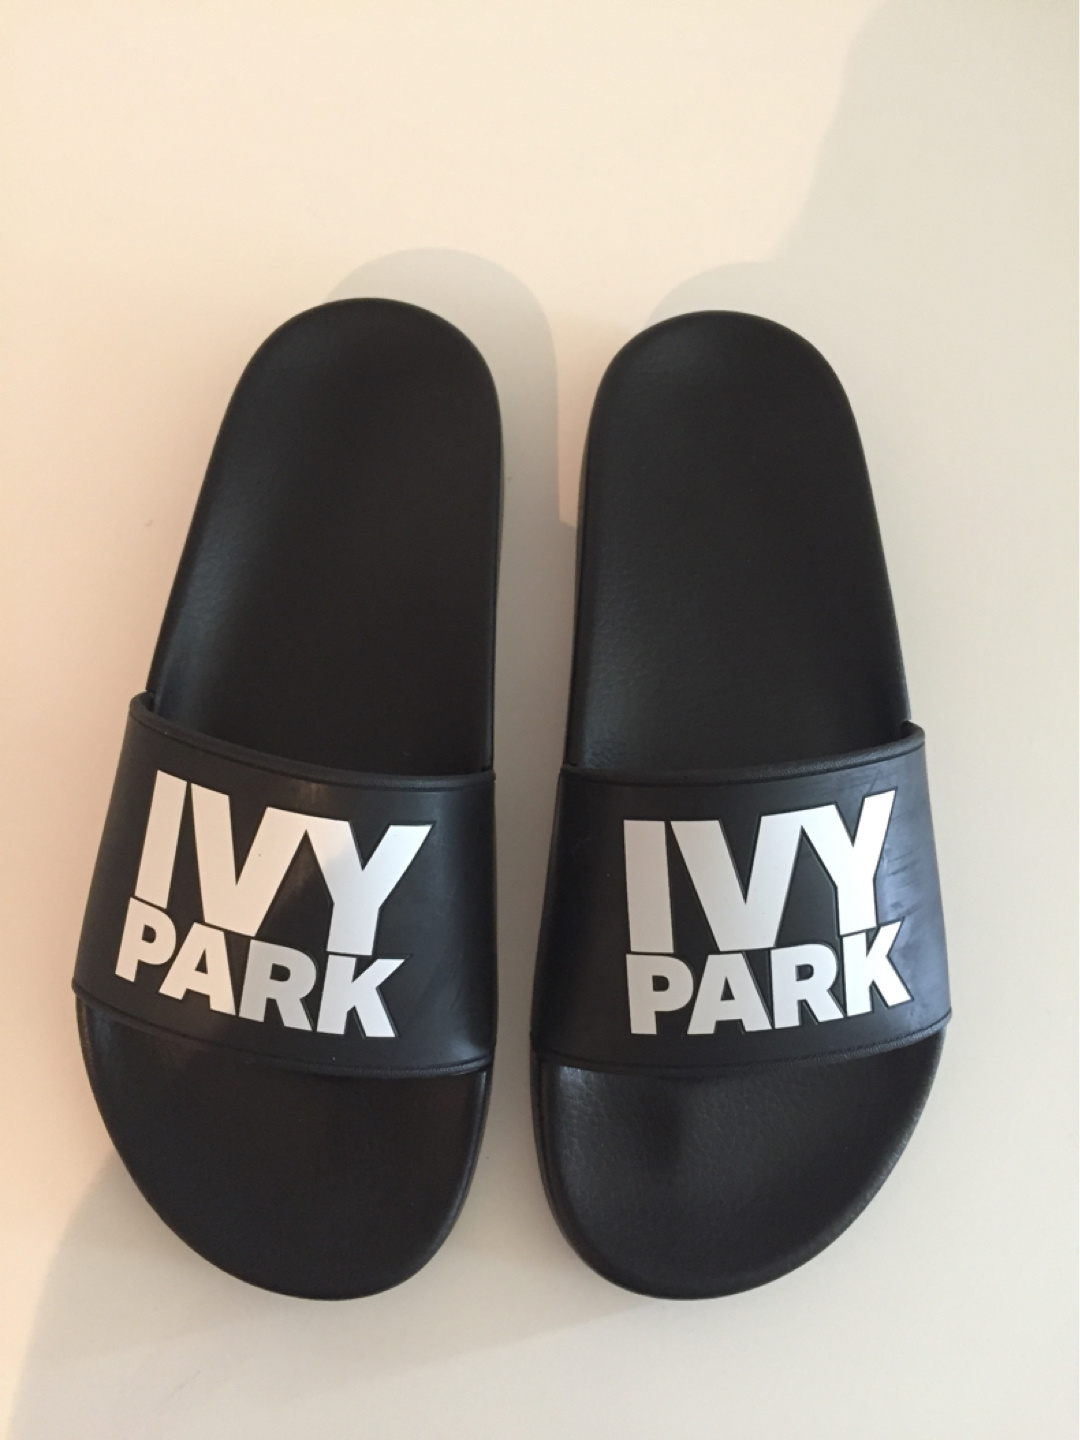 Women's sandals & slippers - IVY PARK photo 1